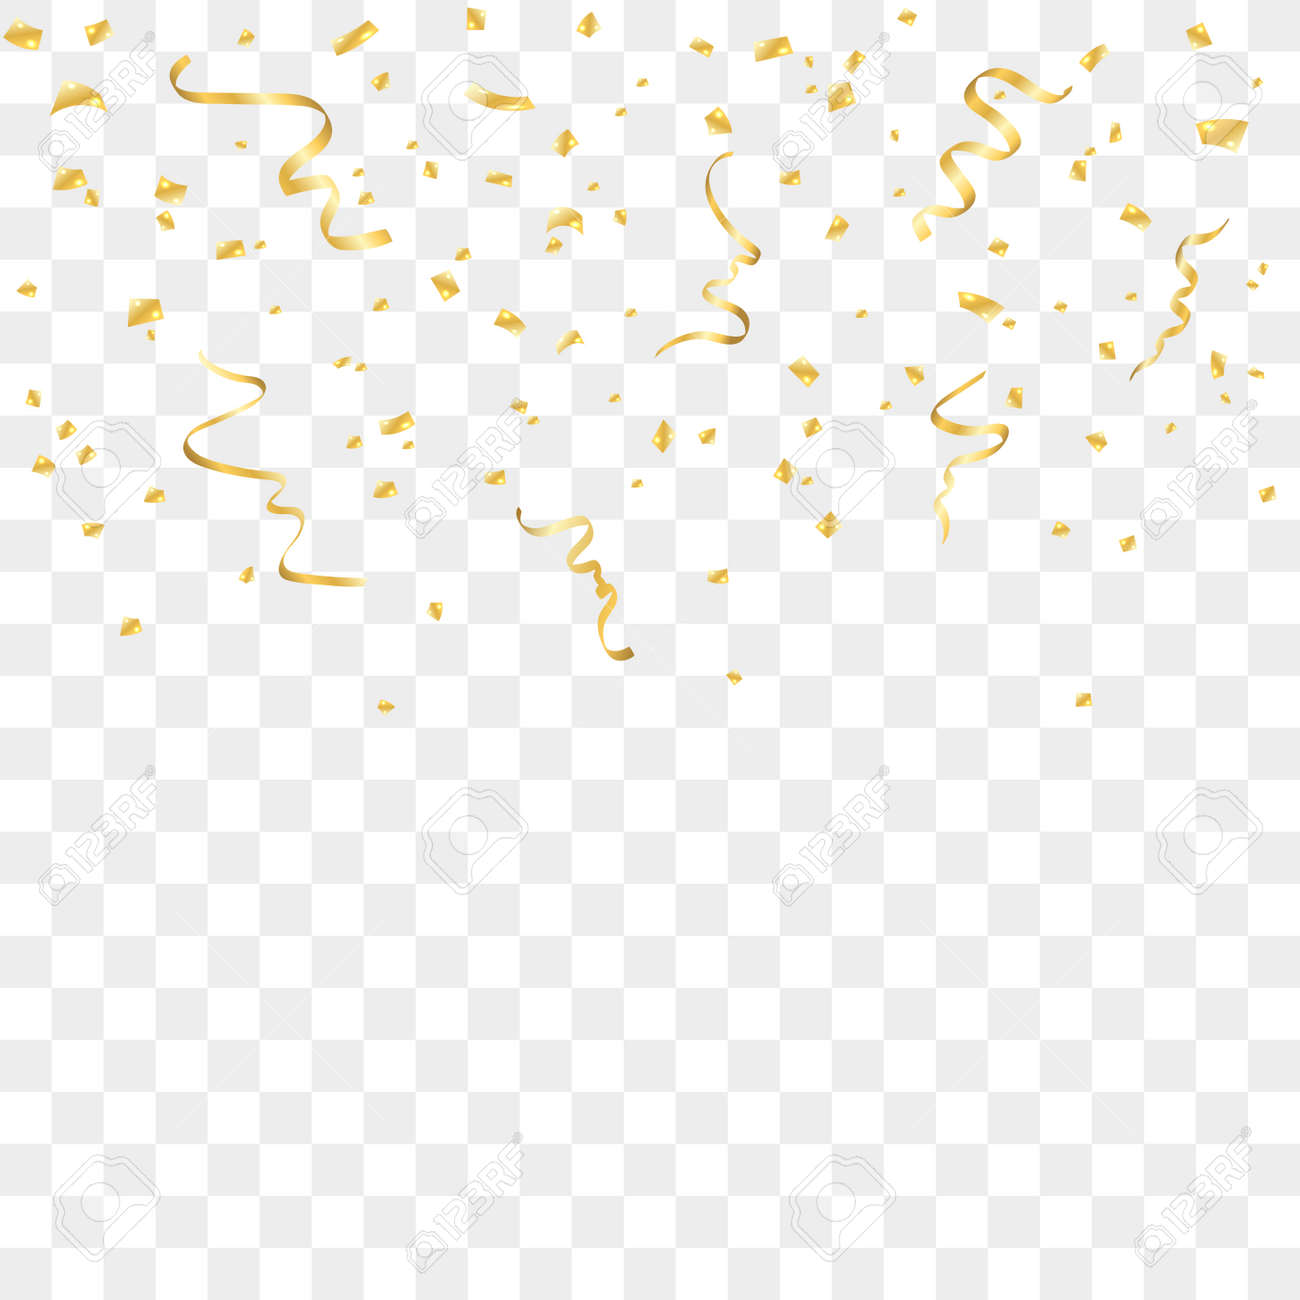 Confetti background vector golden confetti background - Vector Illustration Gold Confetti Celebration Isolated On Transparent Background Falling Golden Abstract Decoration For Party Birthday